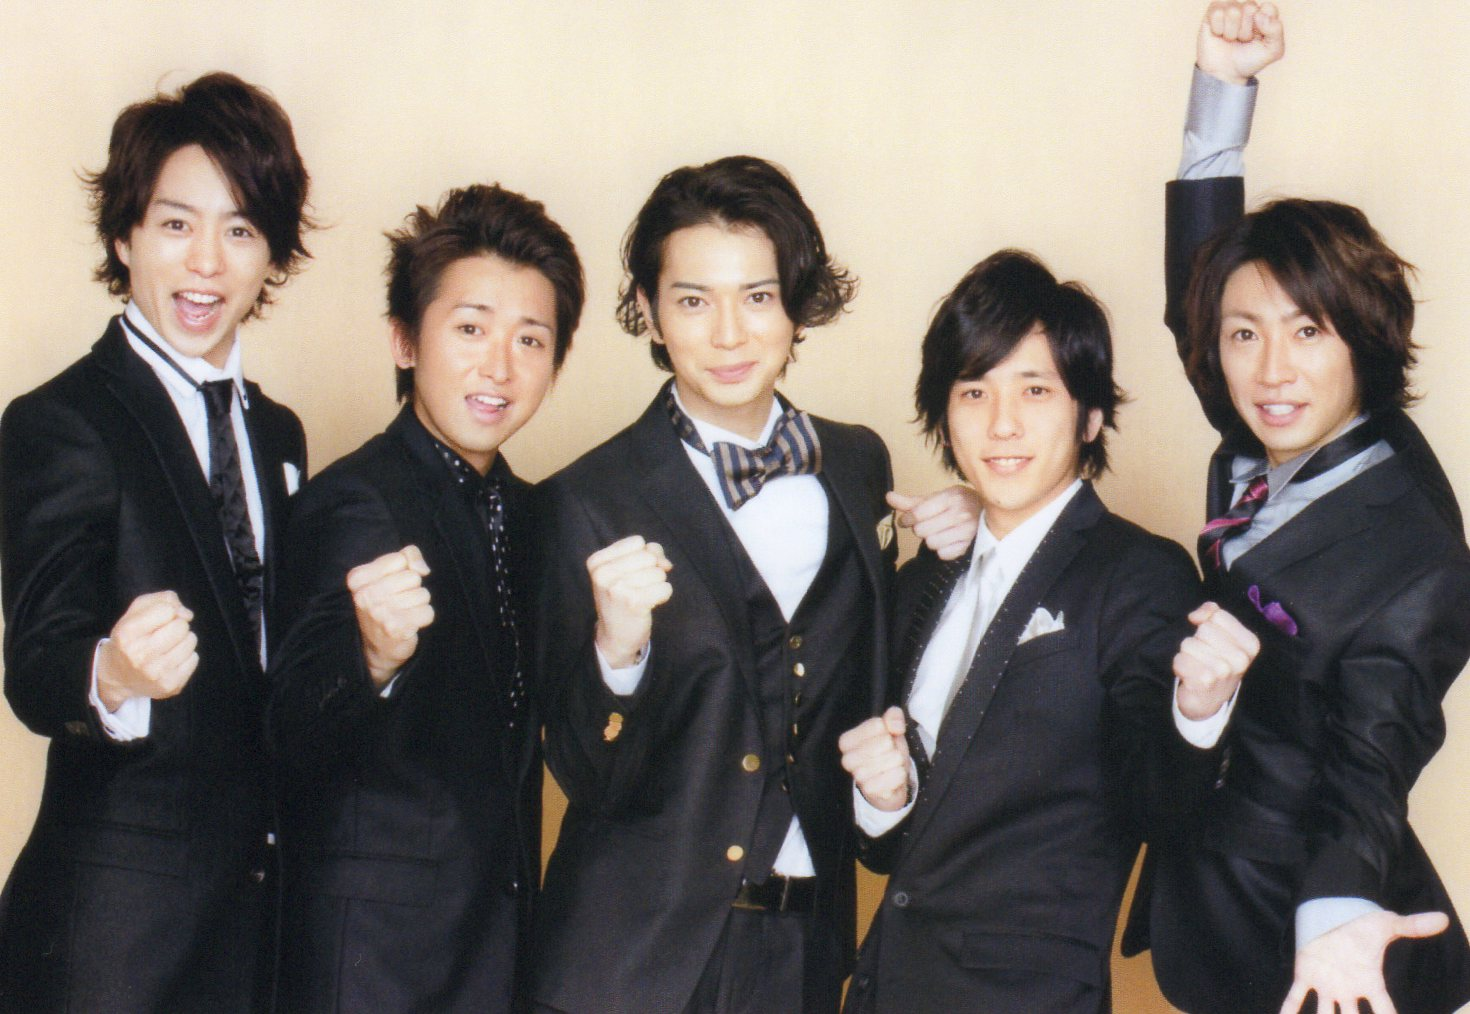 Make Your Own Hd Wallpaper Blog Of Arashi Ichibans And The Power Of Five Orange